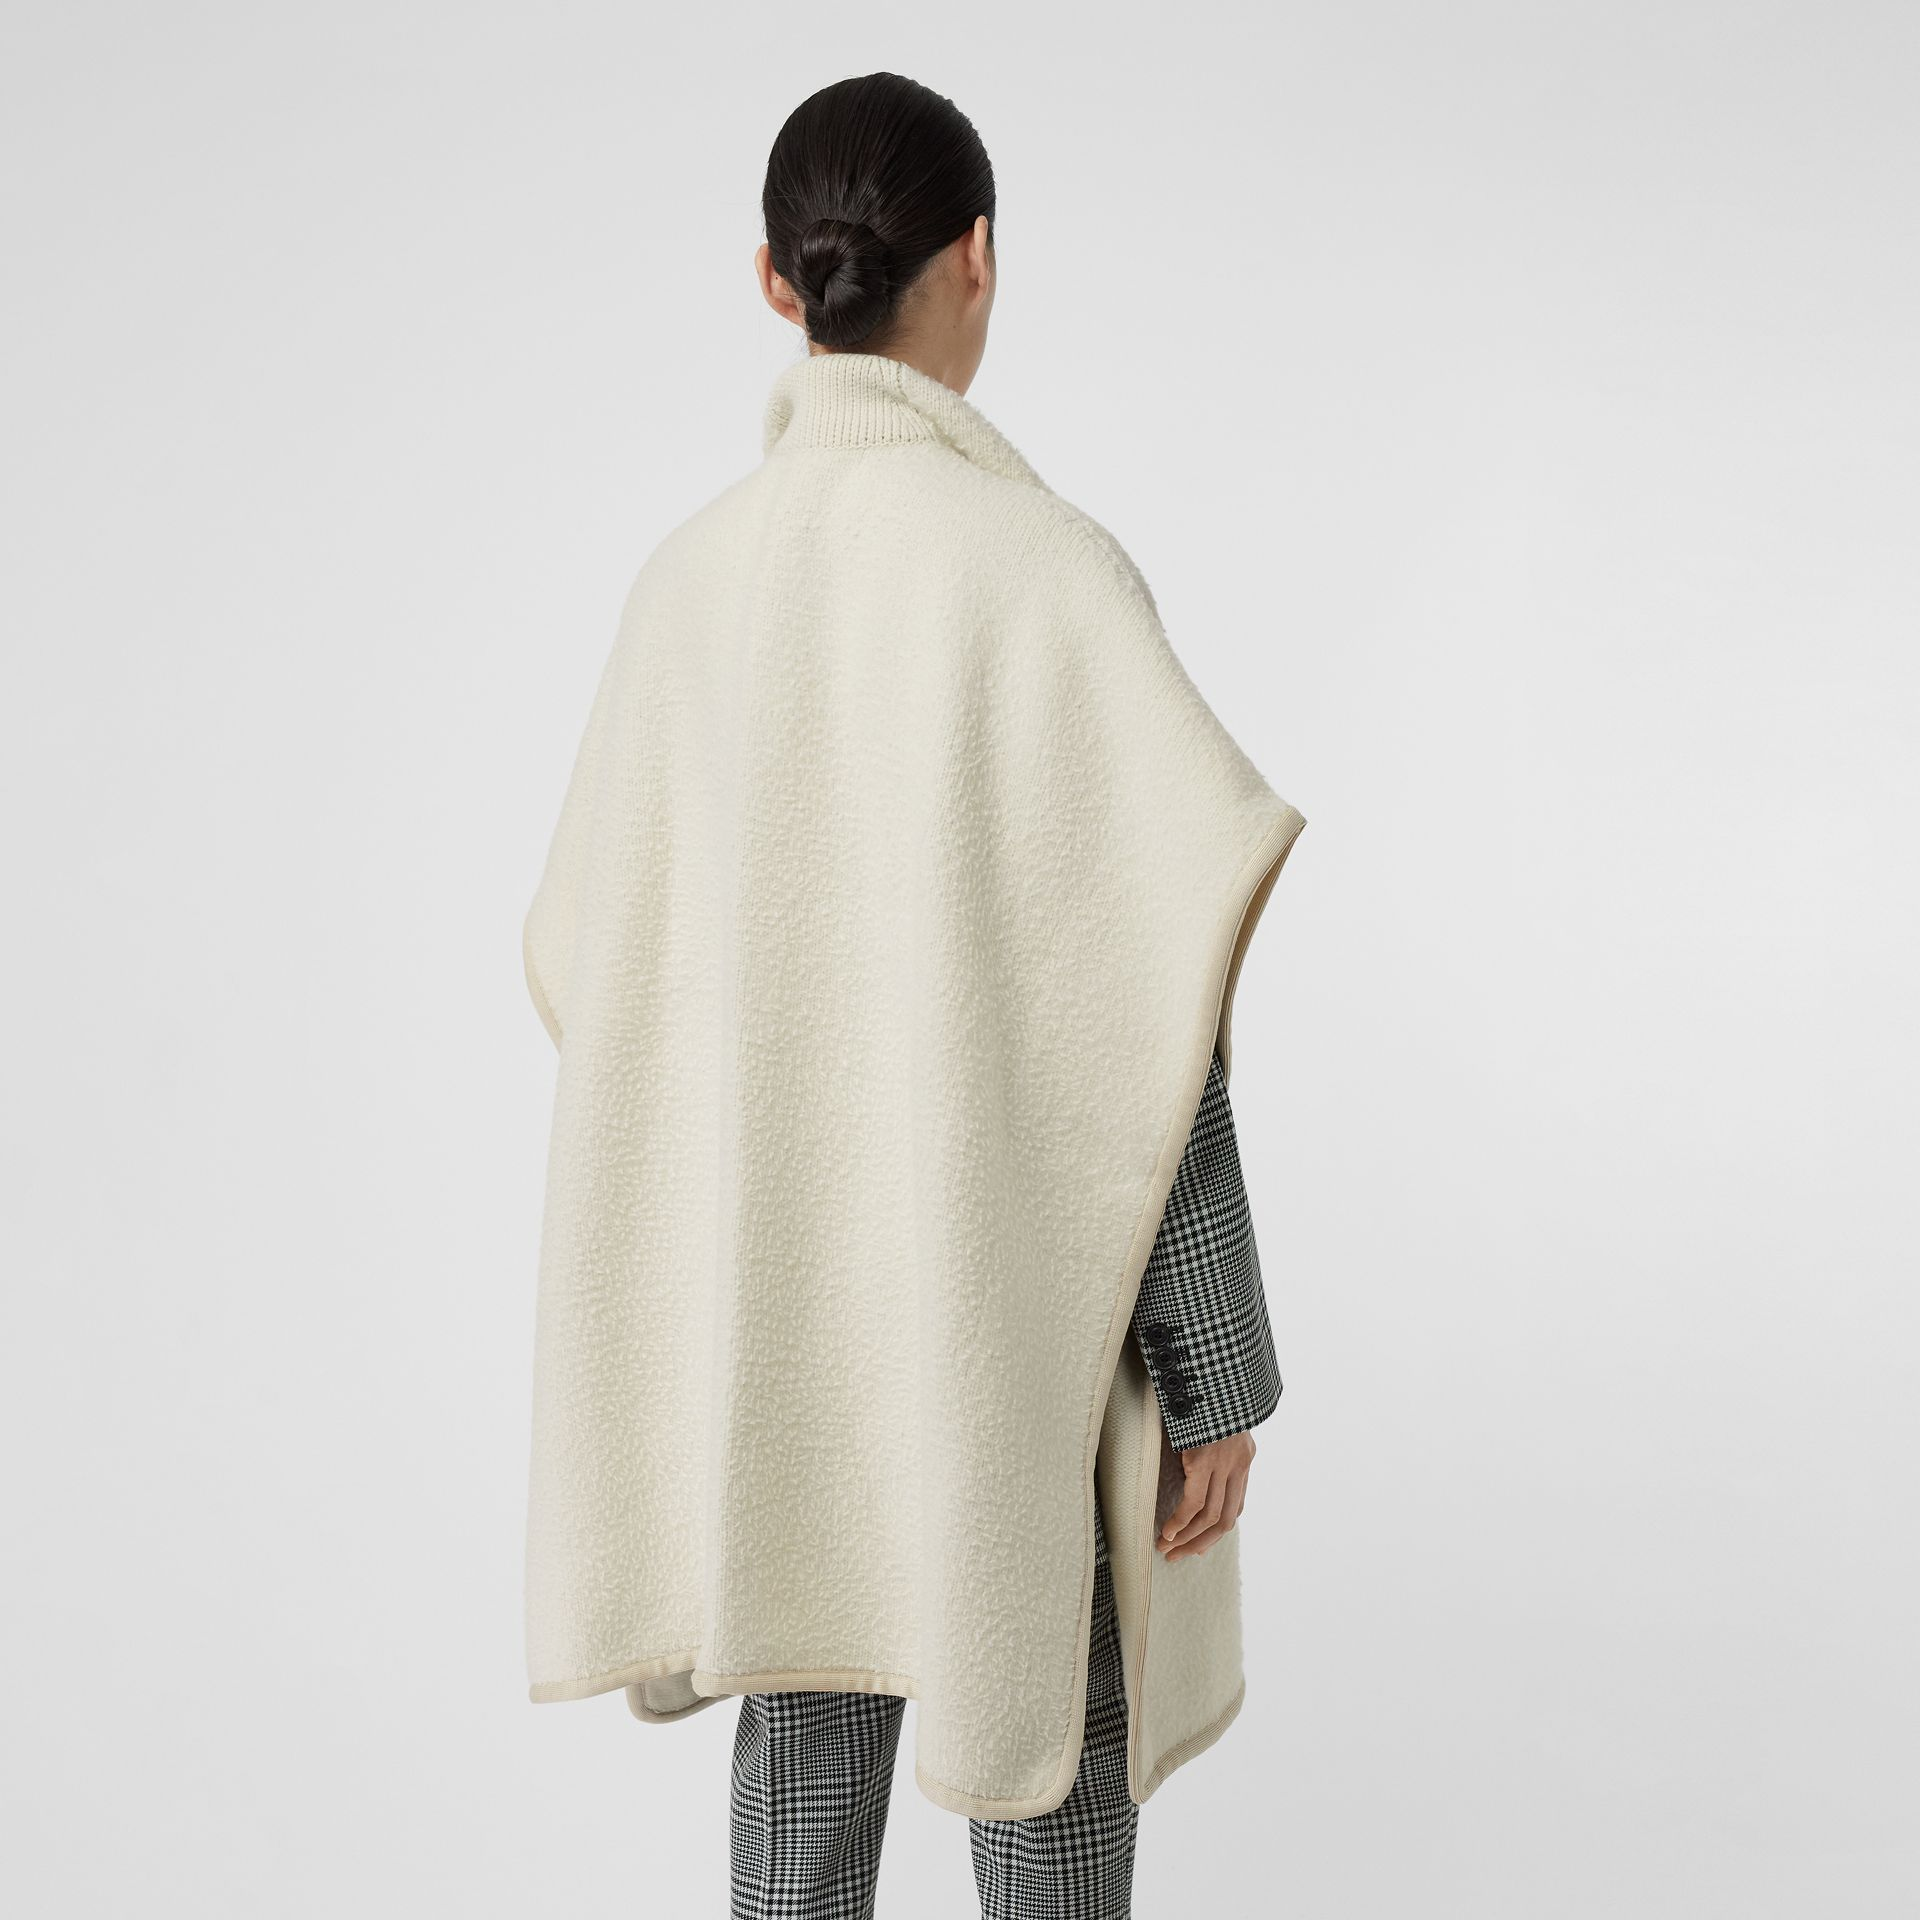 Wool Fleece Cape in Ivory - Women | Burberry - gallery image 2